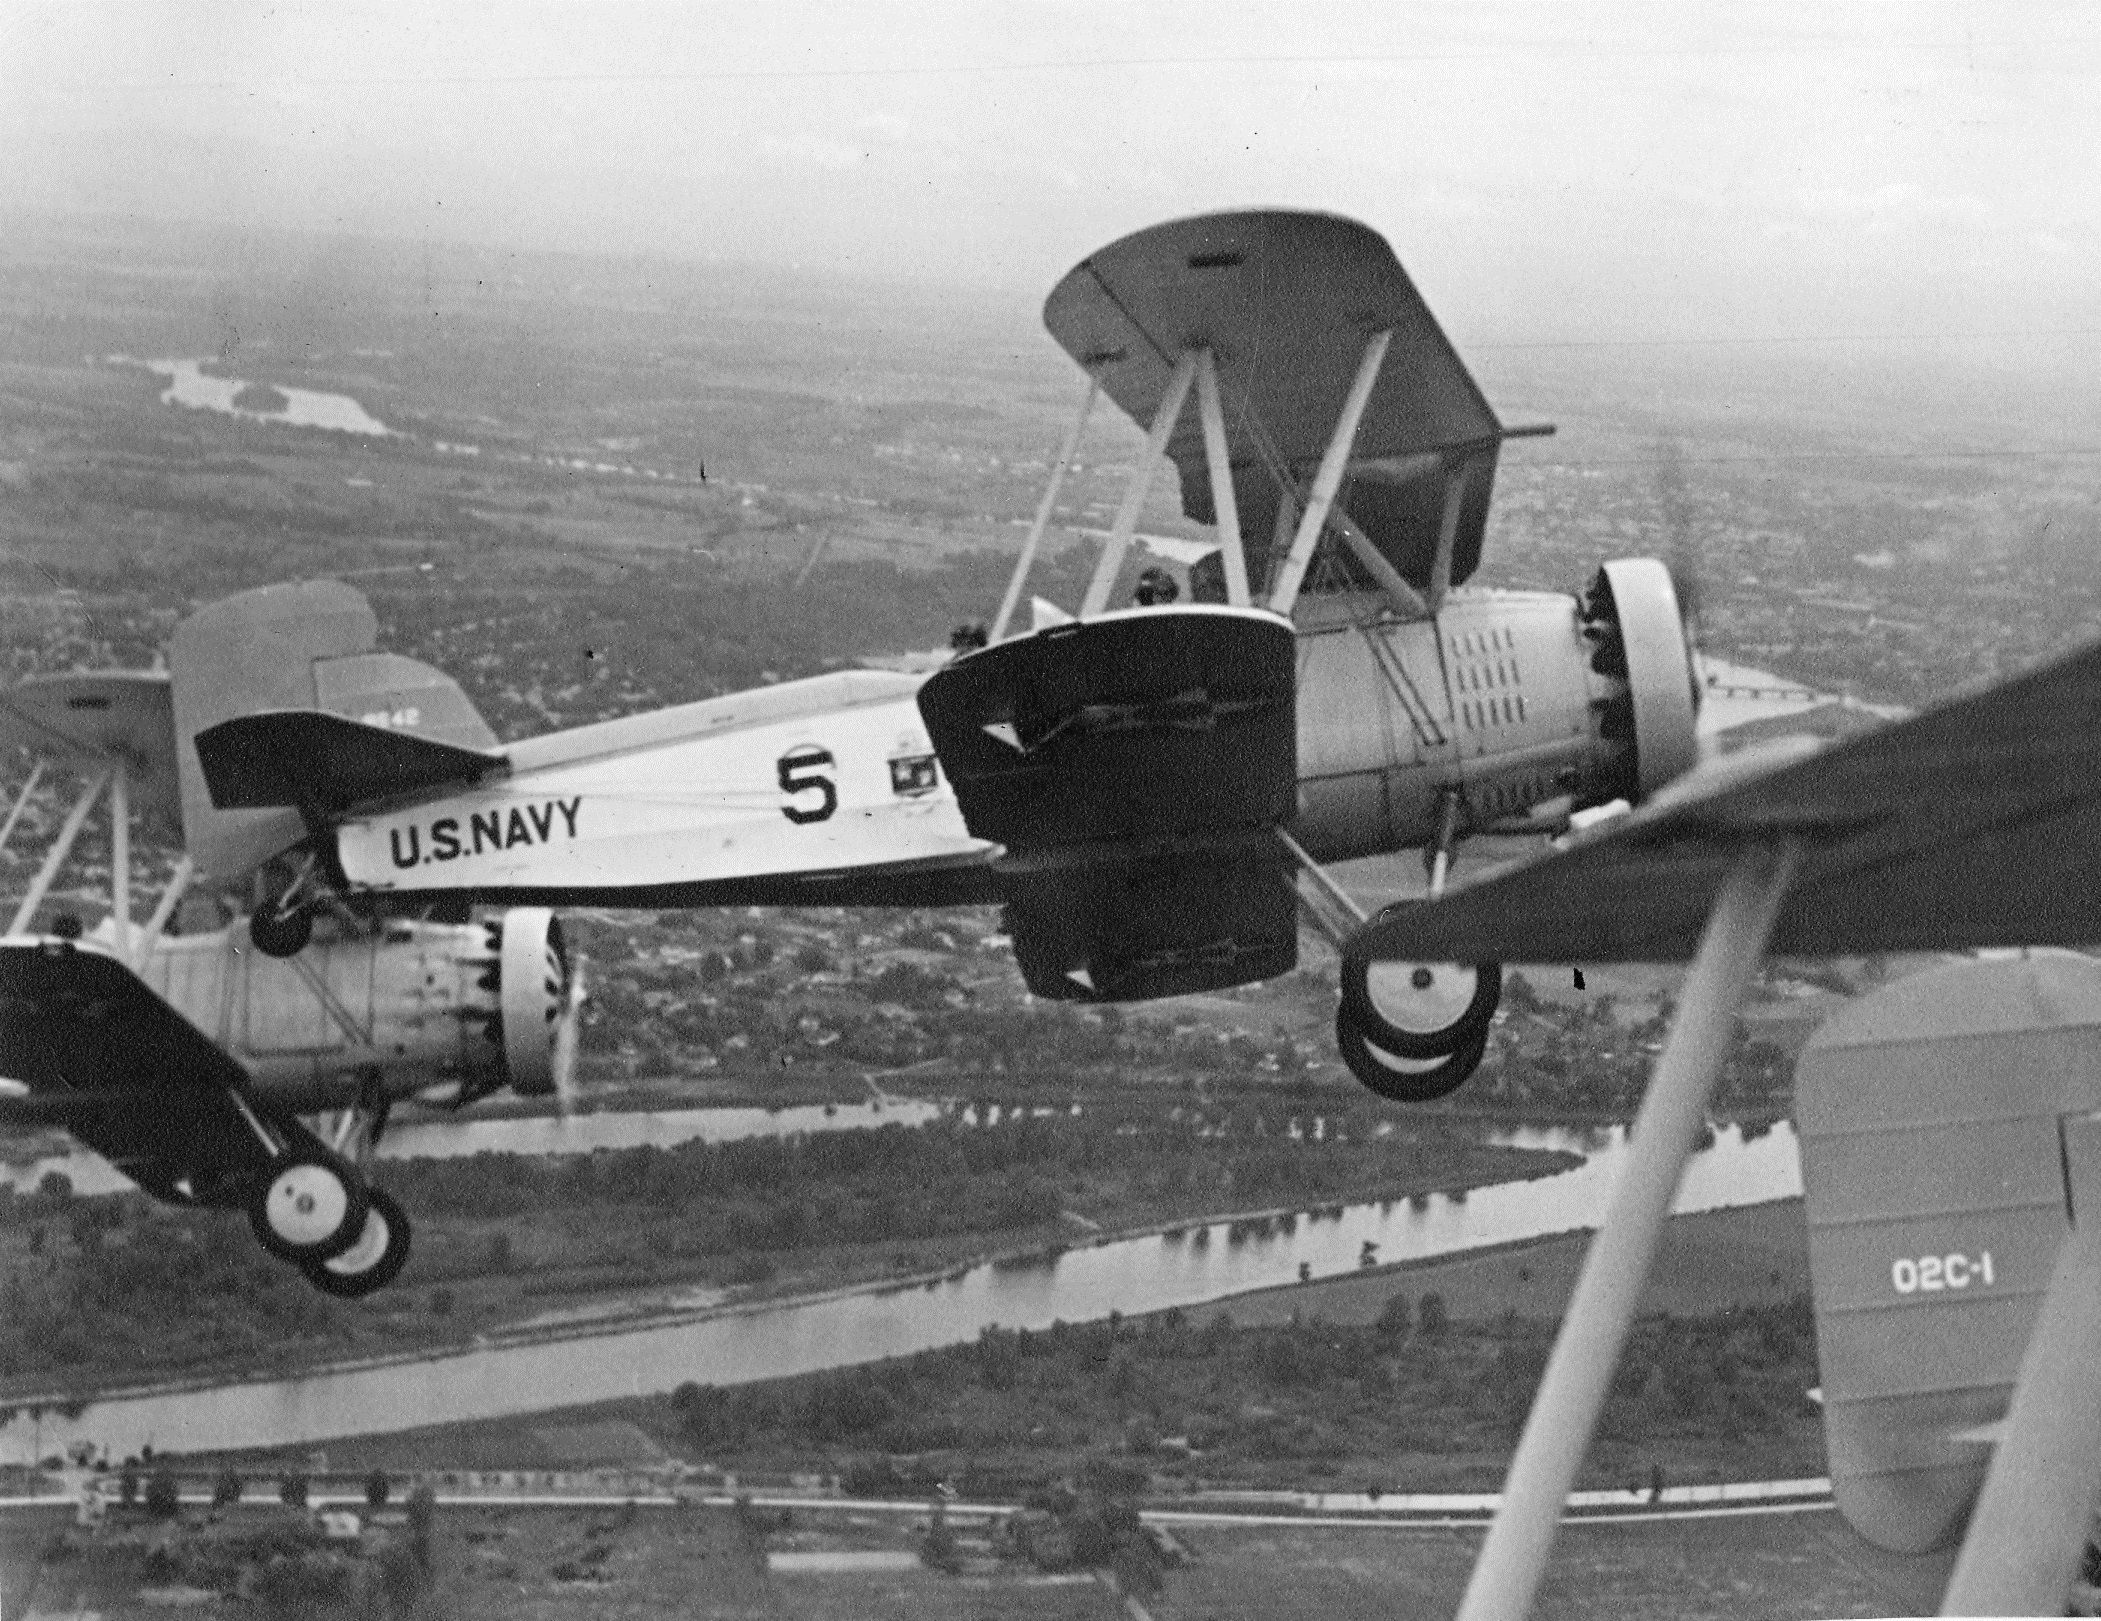 Curtiss Helldiver Us Navy Curtiss O2c 1 Aircraft Assigned To Naval Reserve Air Base New York In Formation C 1930 Usn Naval Us Navy Usn